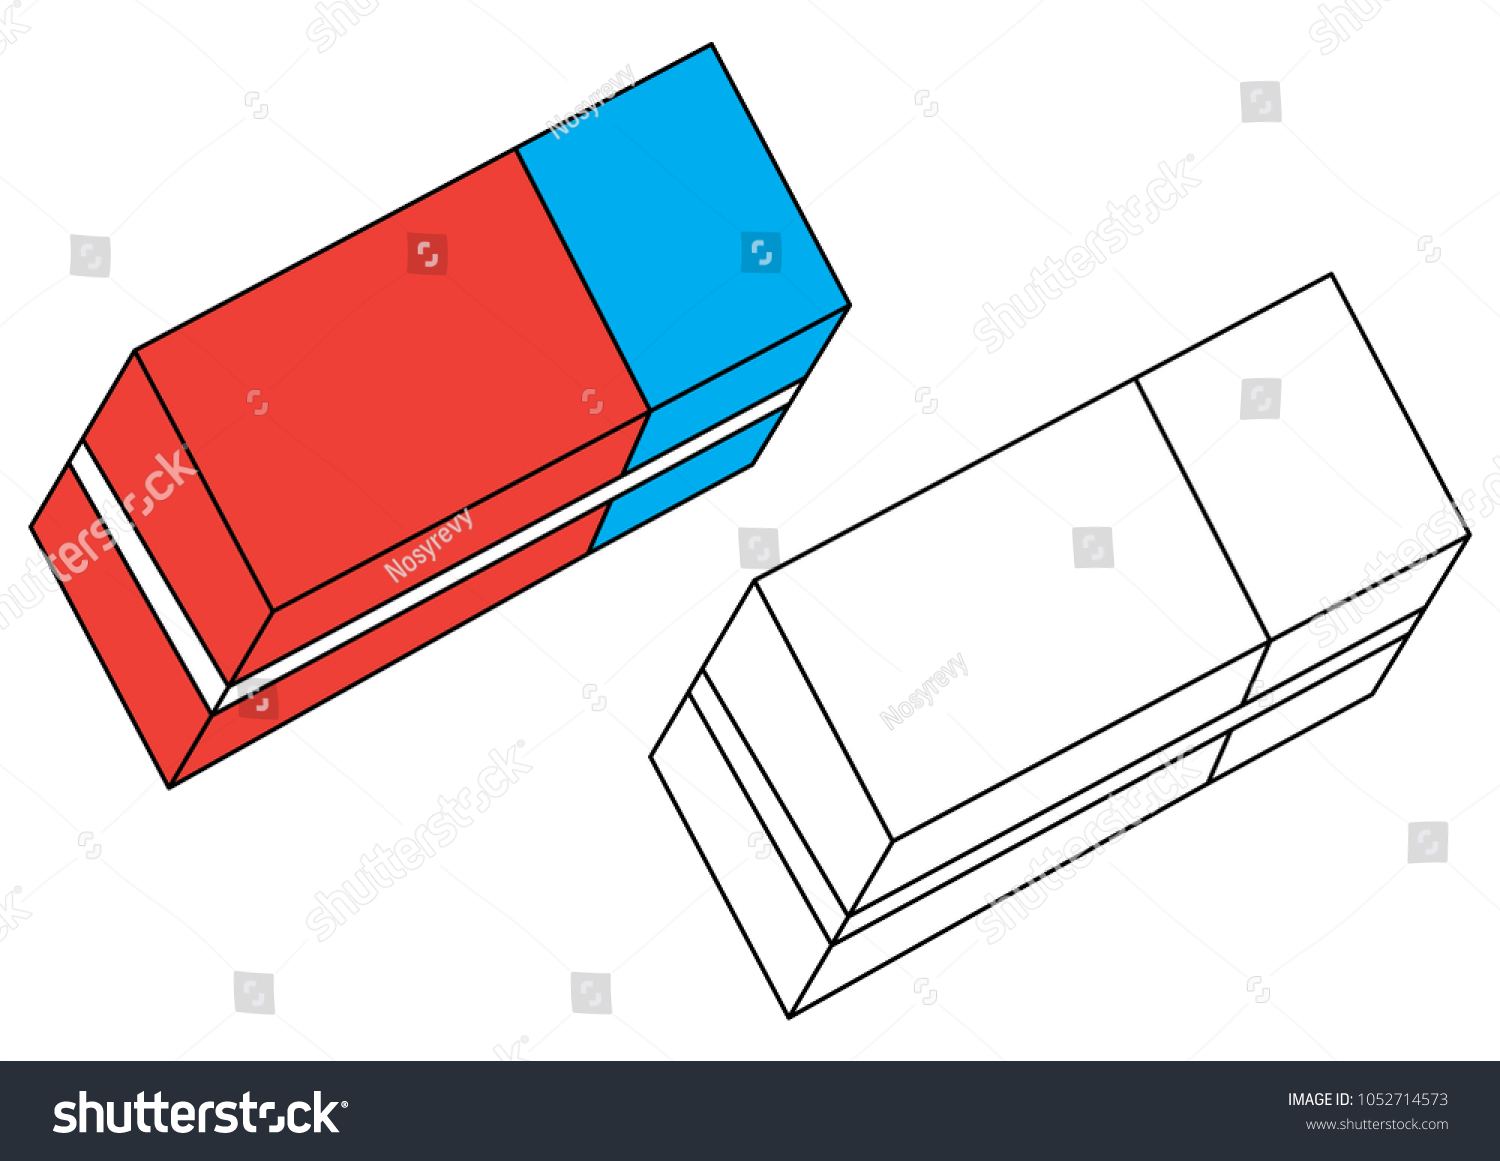 Eraser Coloring Page Vector Stock Vector 1052714573 - Shutterstock